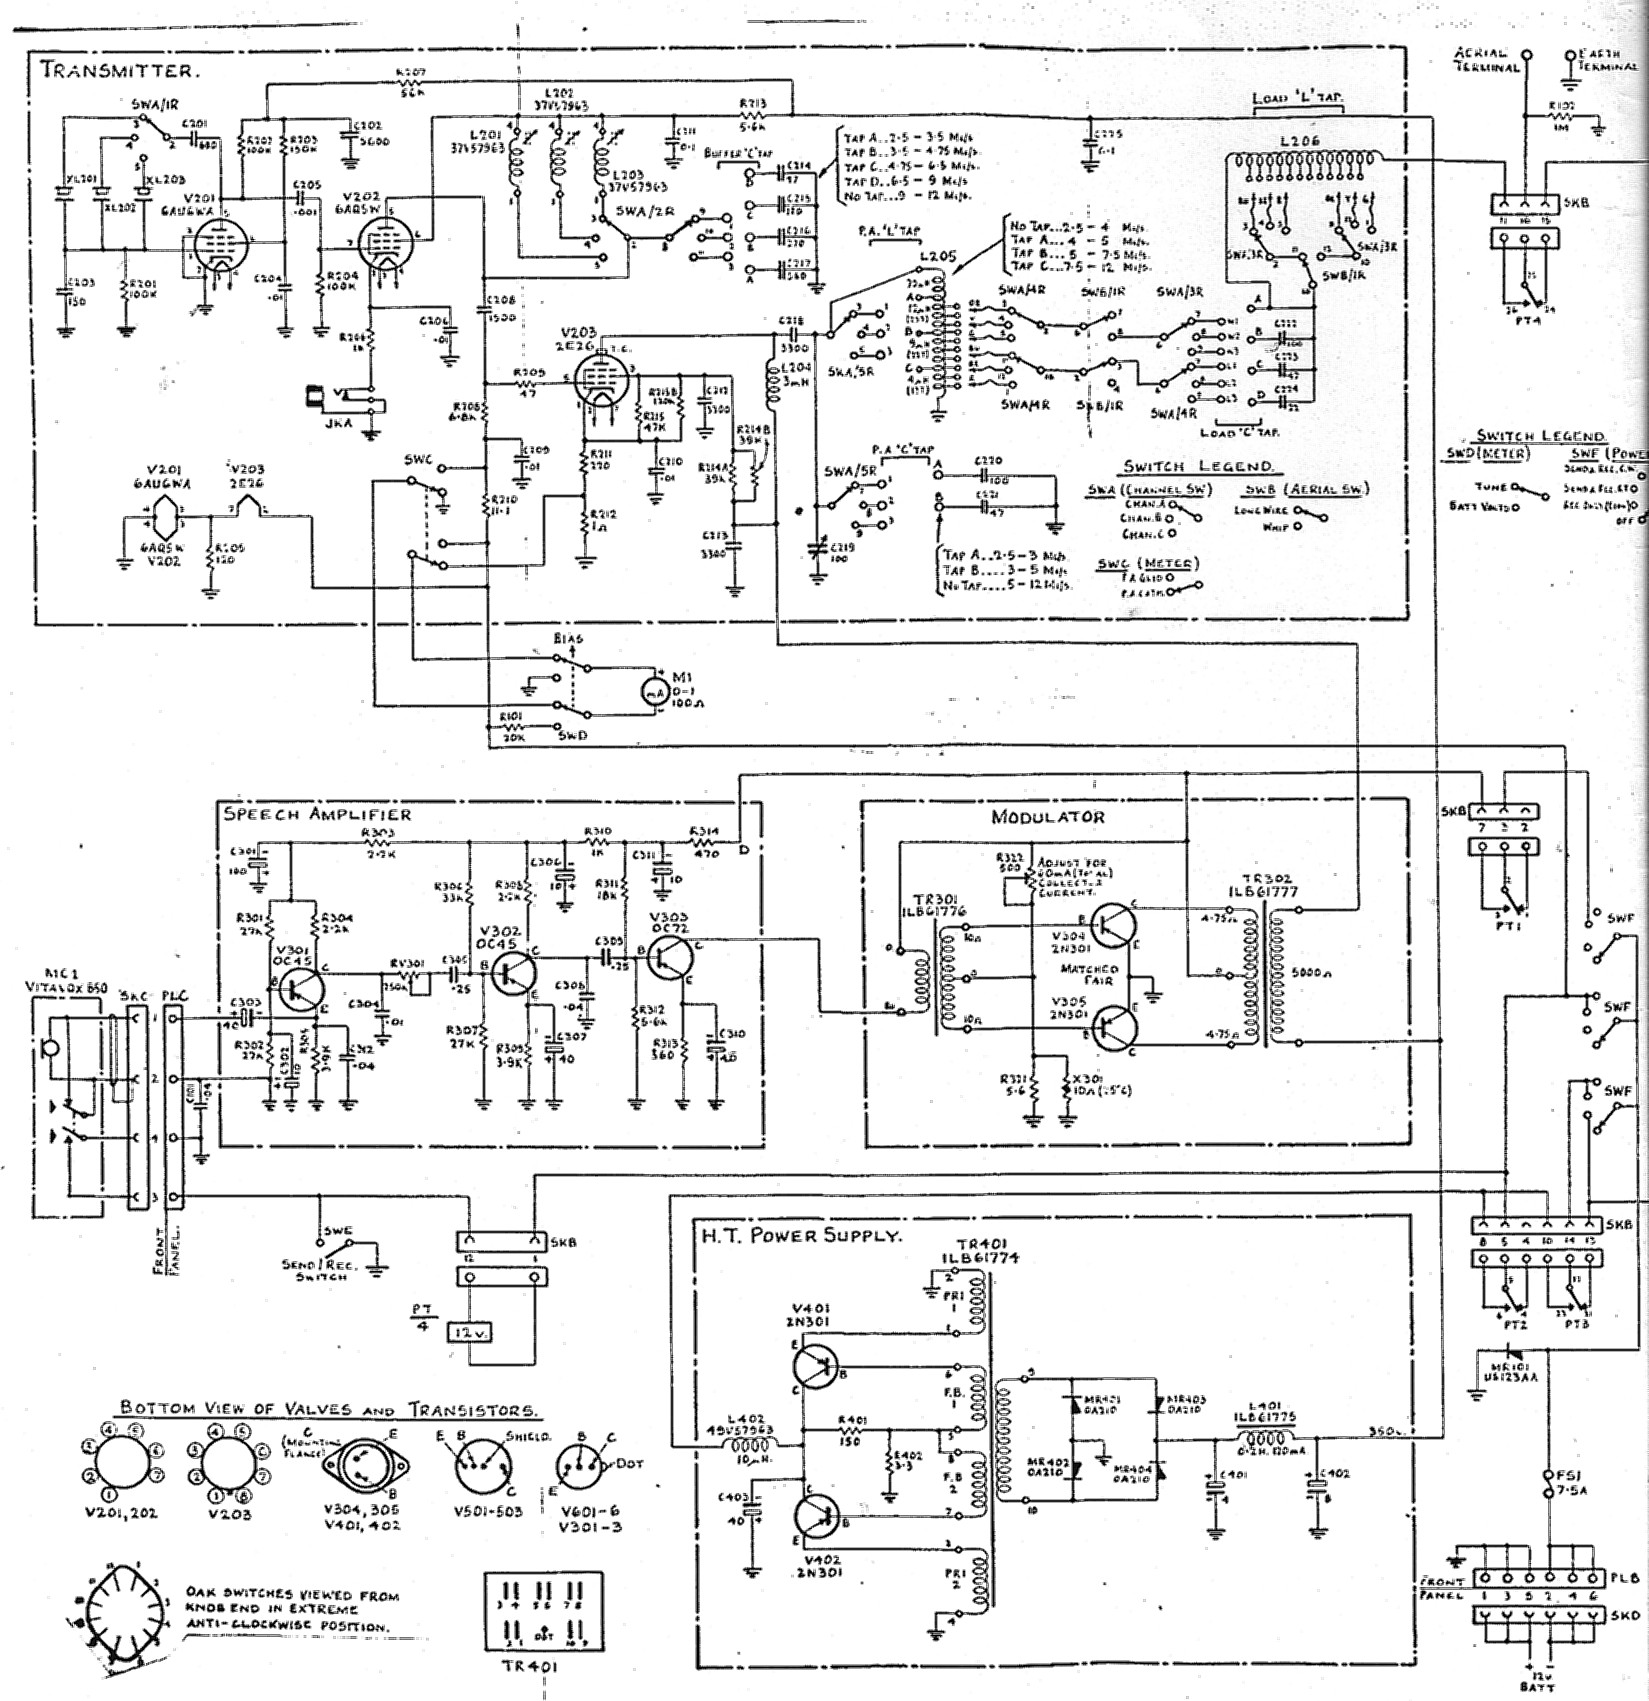 wre type 2 transceiver circuit diagrams rh users tpg com au radio transceiver circuit diagram bluetooth transceiver circuit diagram